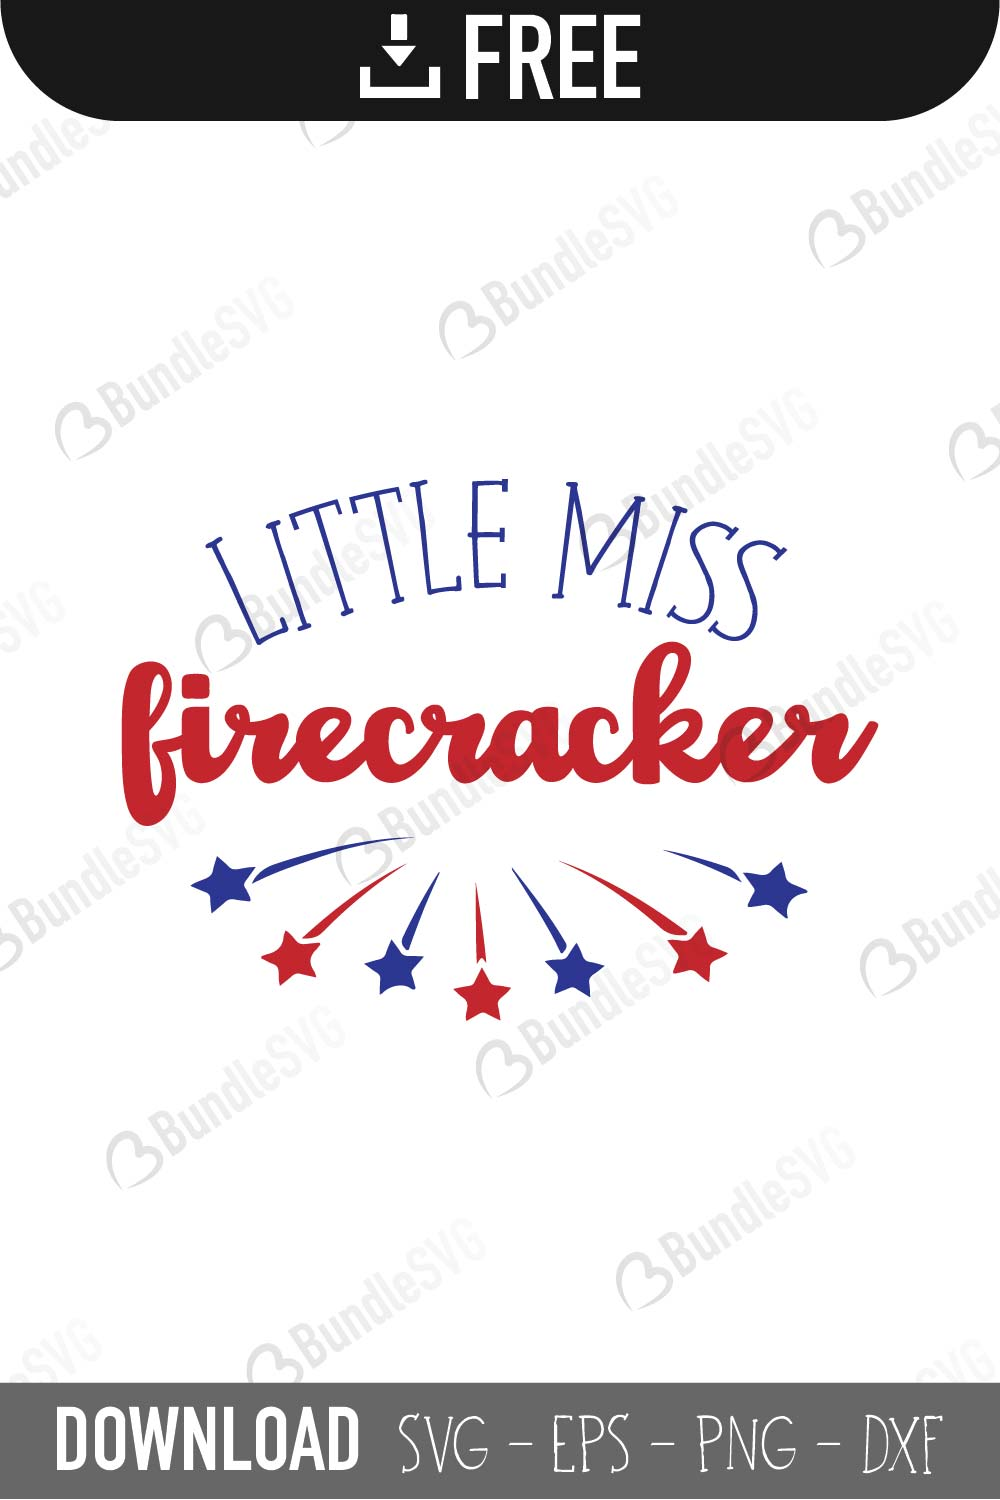 Firecracker Svg Cut Files Free Download Bundlesvg